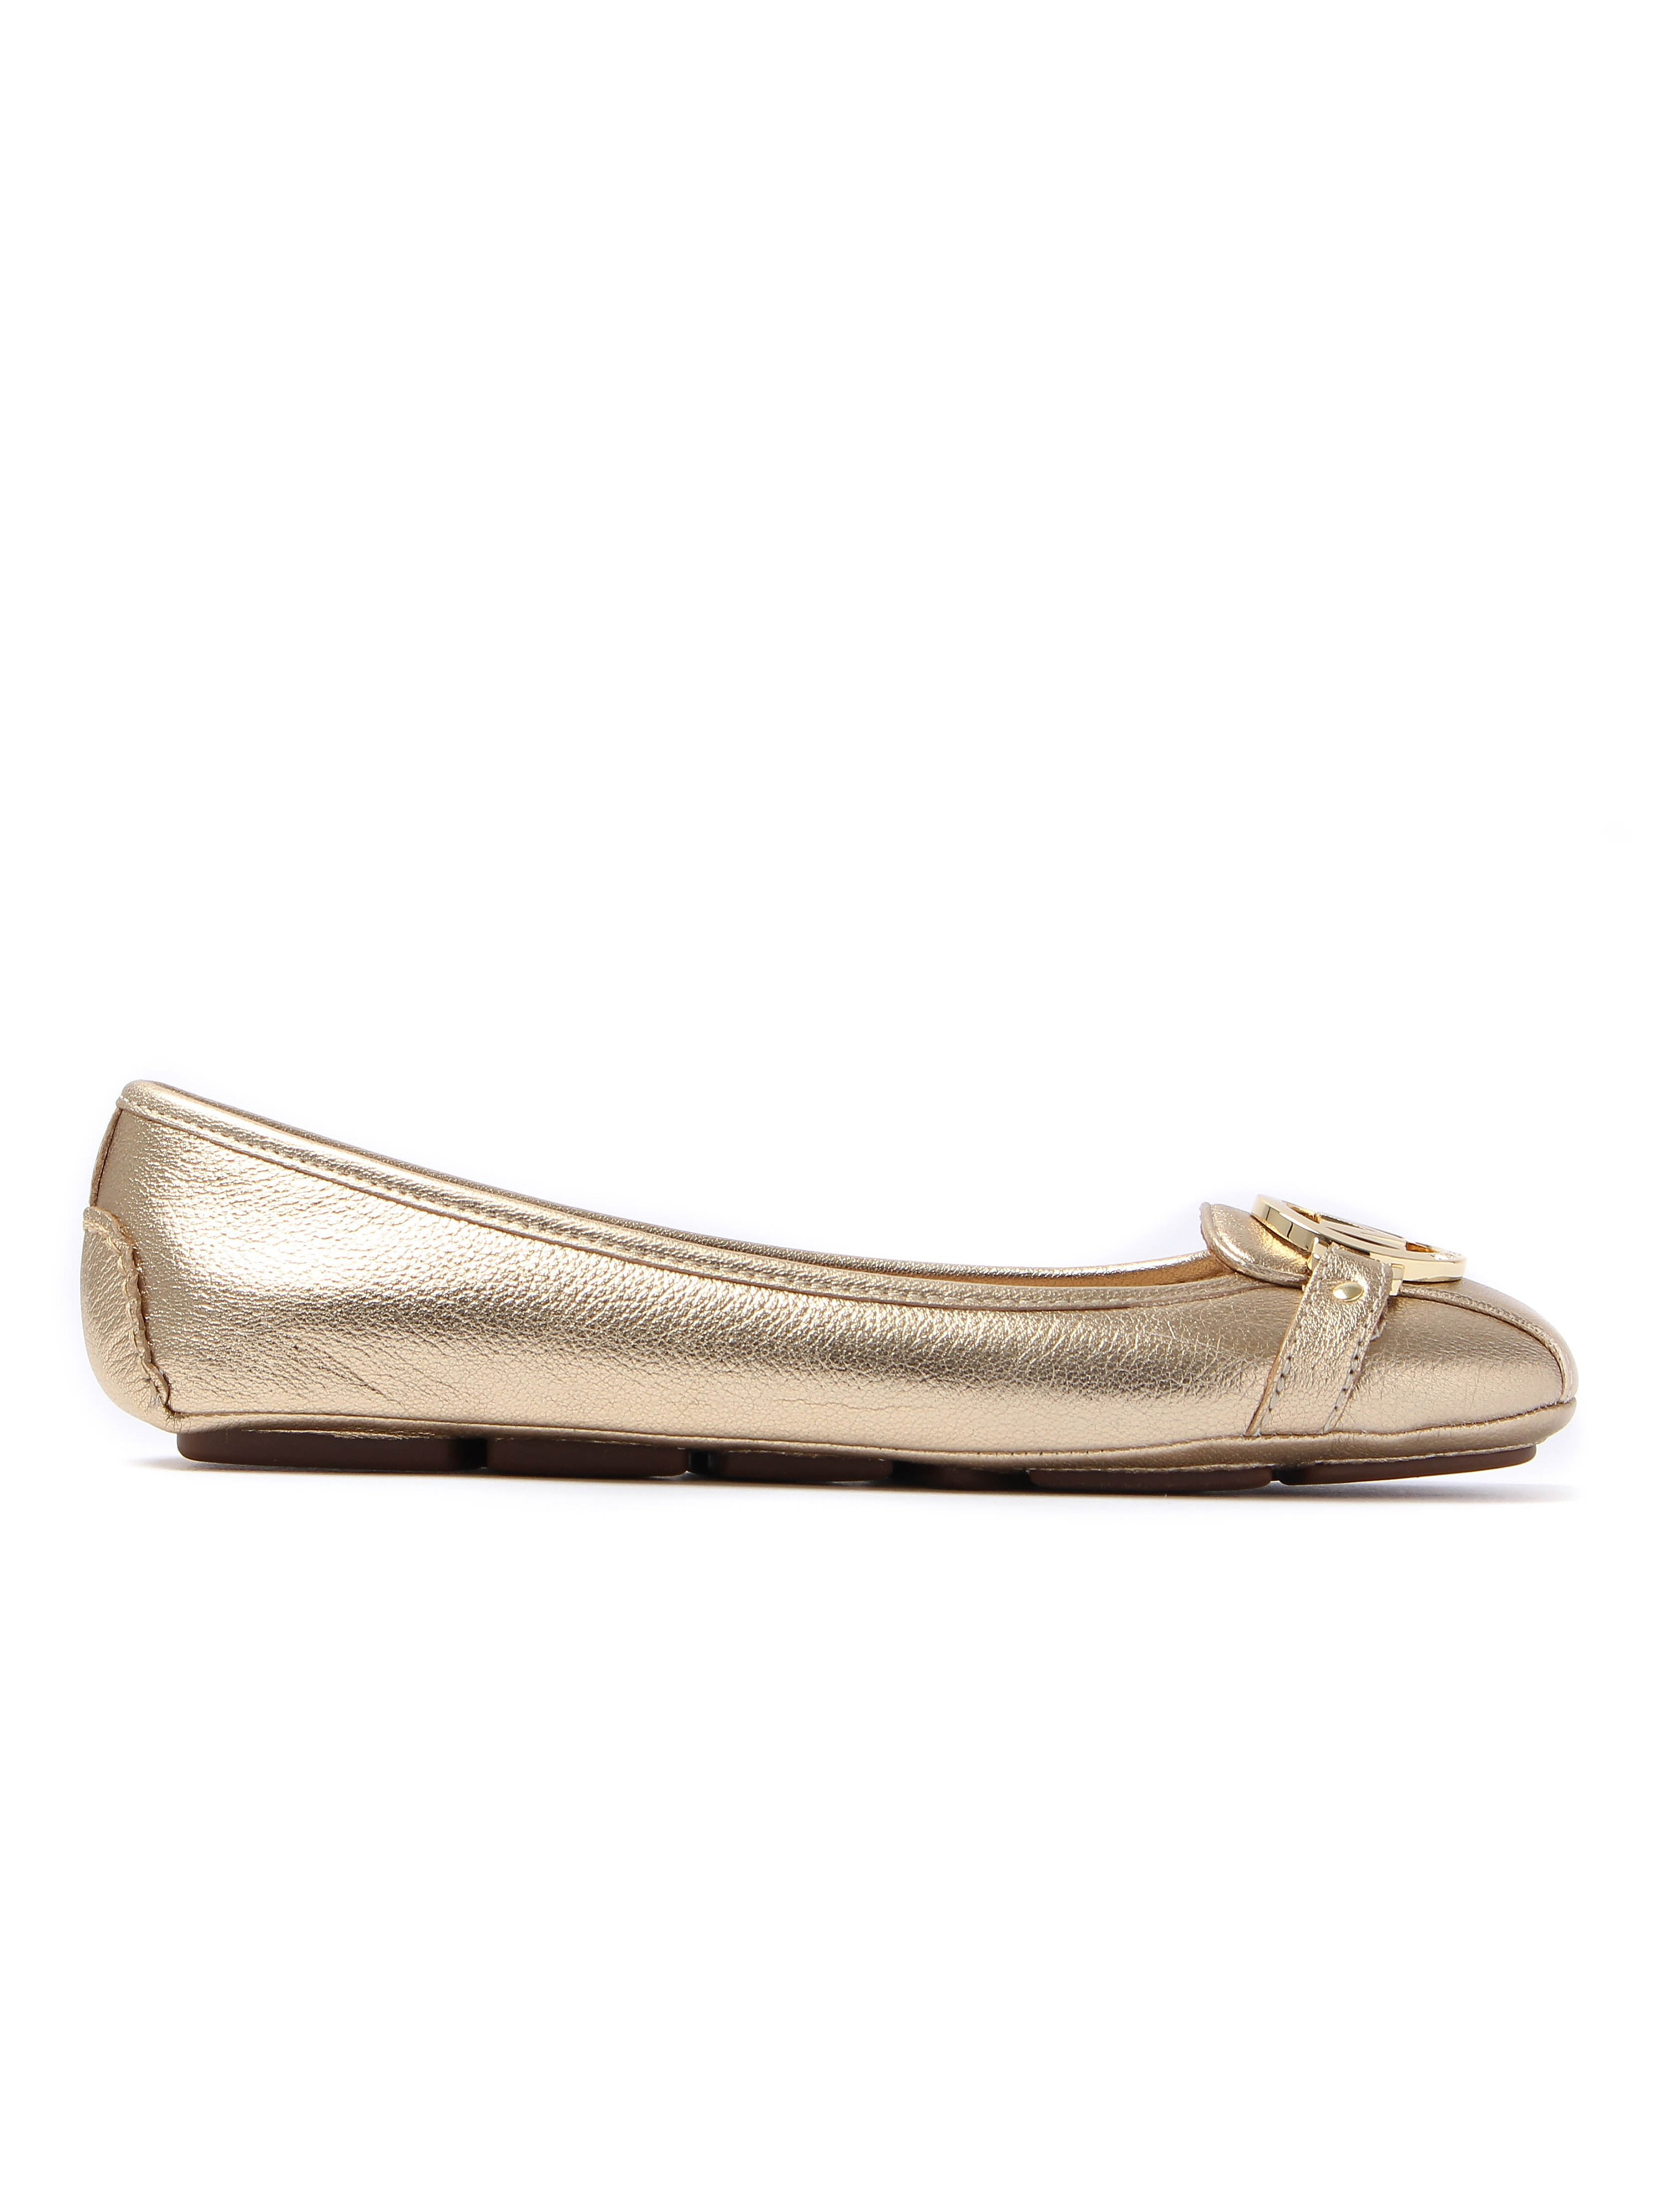 MICHAEL Michael Kors Women's Fulton Moc Metallic Leather Ballerinas - Pale Gold